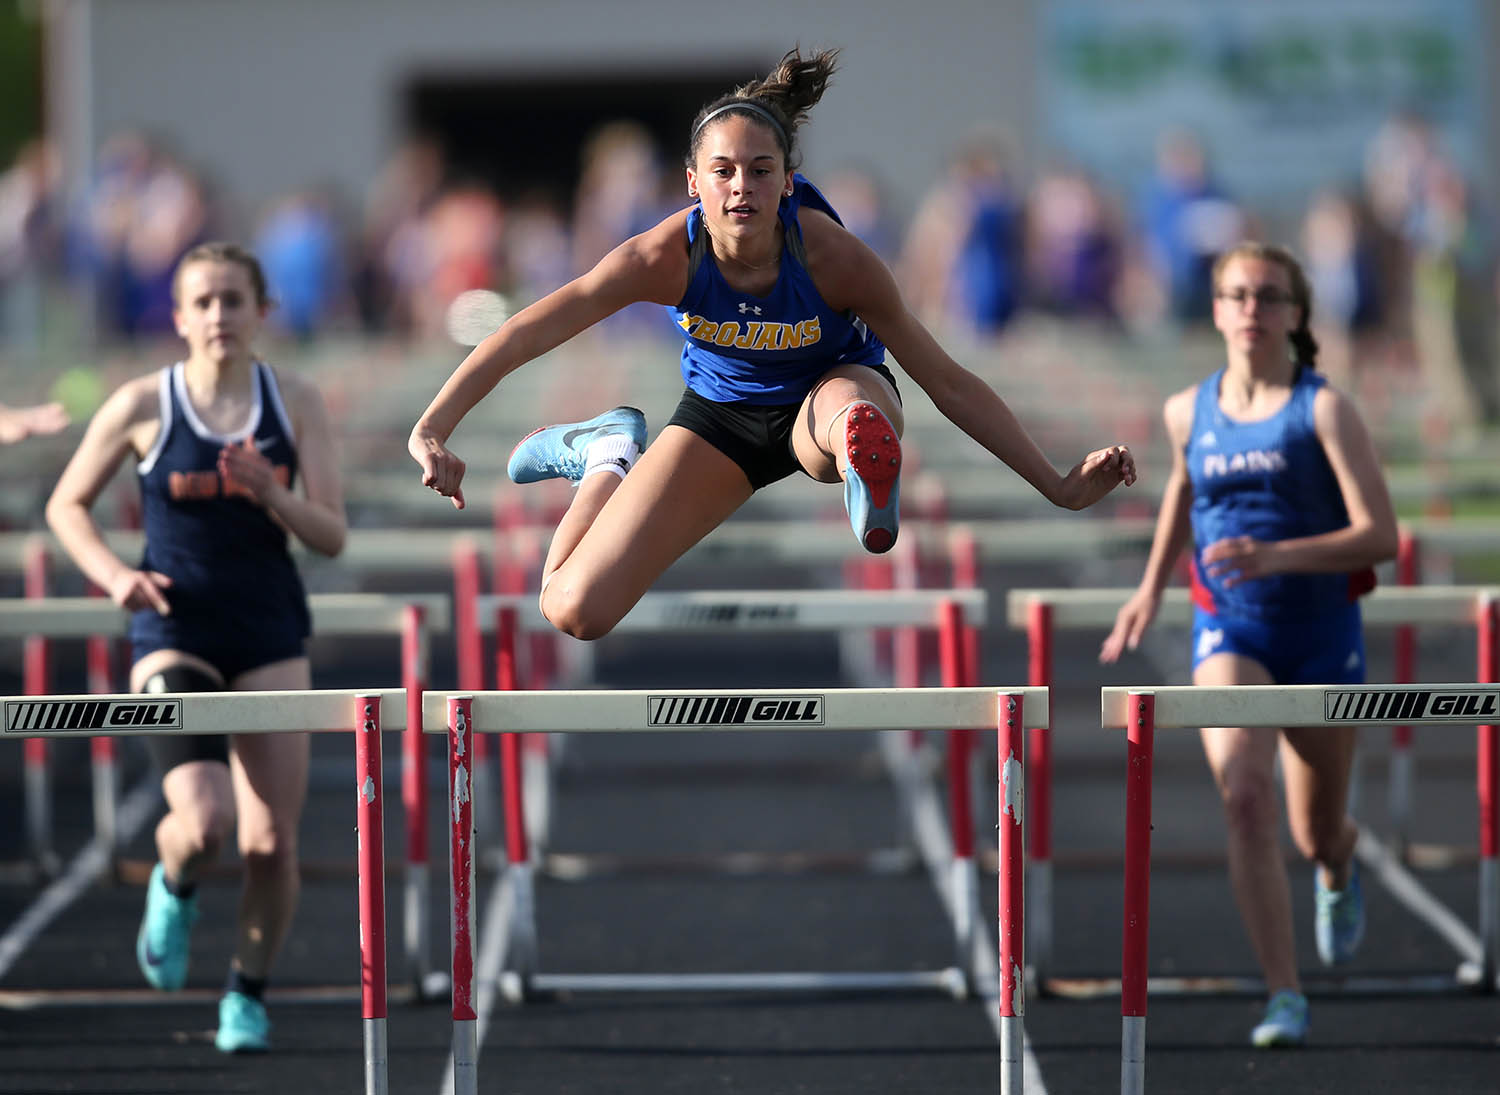 Maroa-Forsyth's Lillians Amettis wins the Girls 100m Hurdles with a time of 17.21 during the Sangamo Conference Track Meet at Pleasant Plains High School, Wednesday, May 1, 2019, in Pleasant Plains, Ill. [Justin L. Fowler/The State Journal-Register]